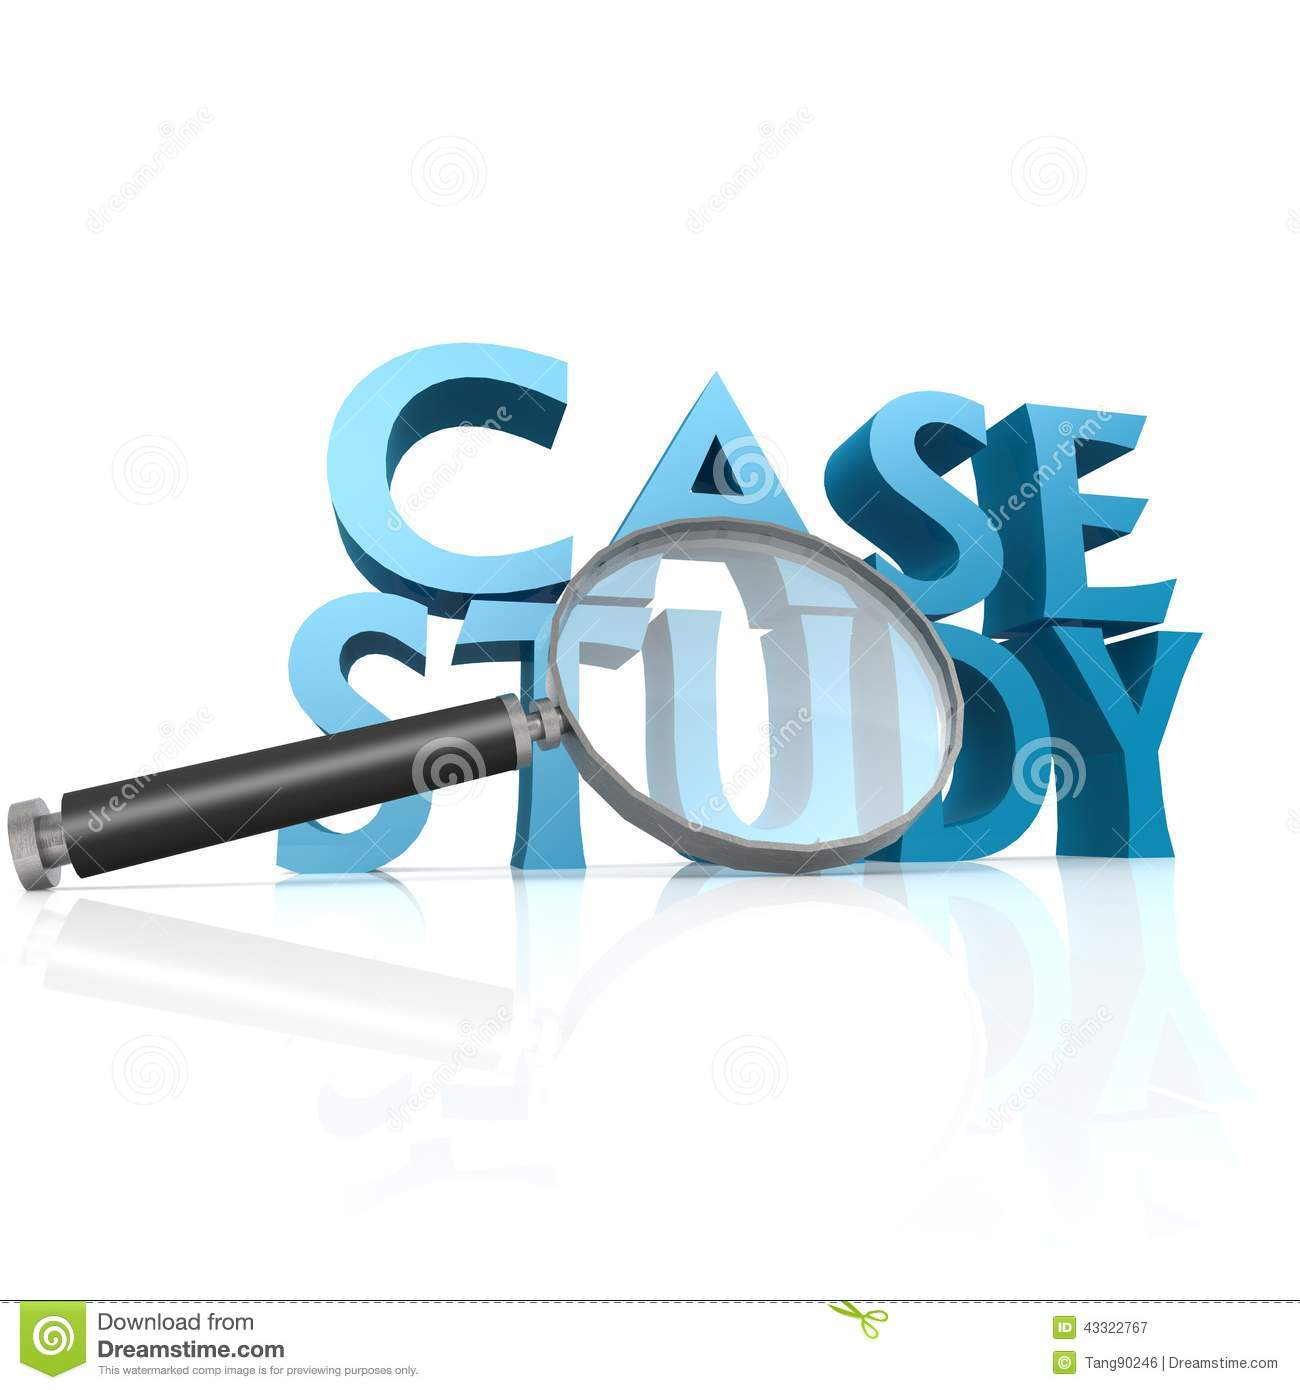 7 2 case study five star tools Free essay: case 7-2 five star tools this report provides an analysis and  evaluation of constraints in the production process for the model.